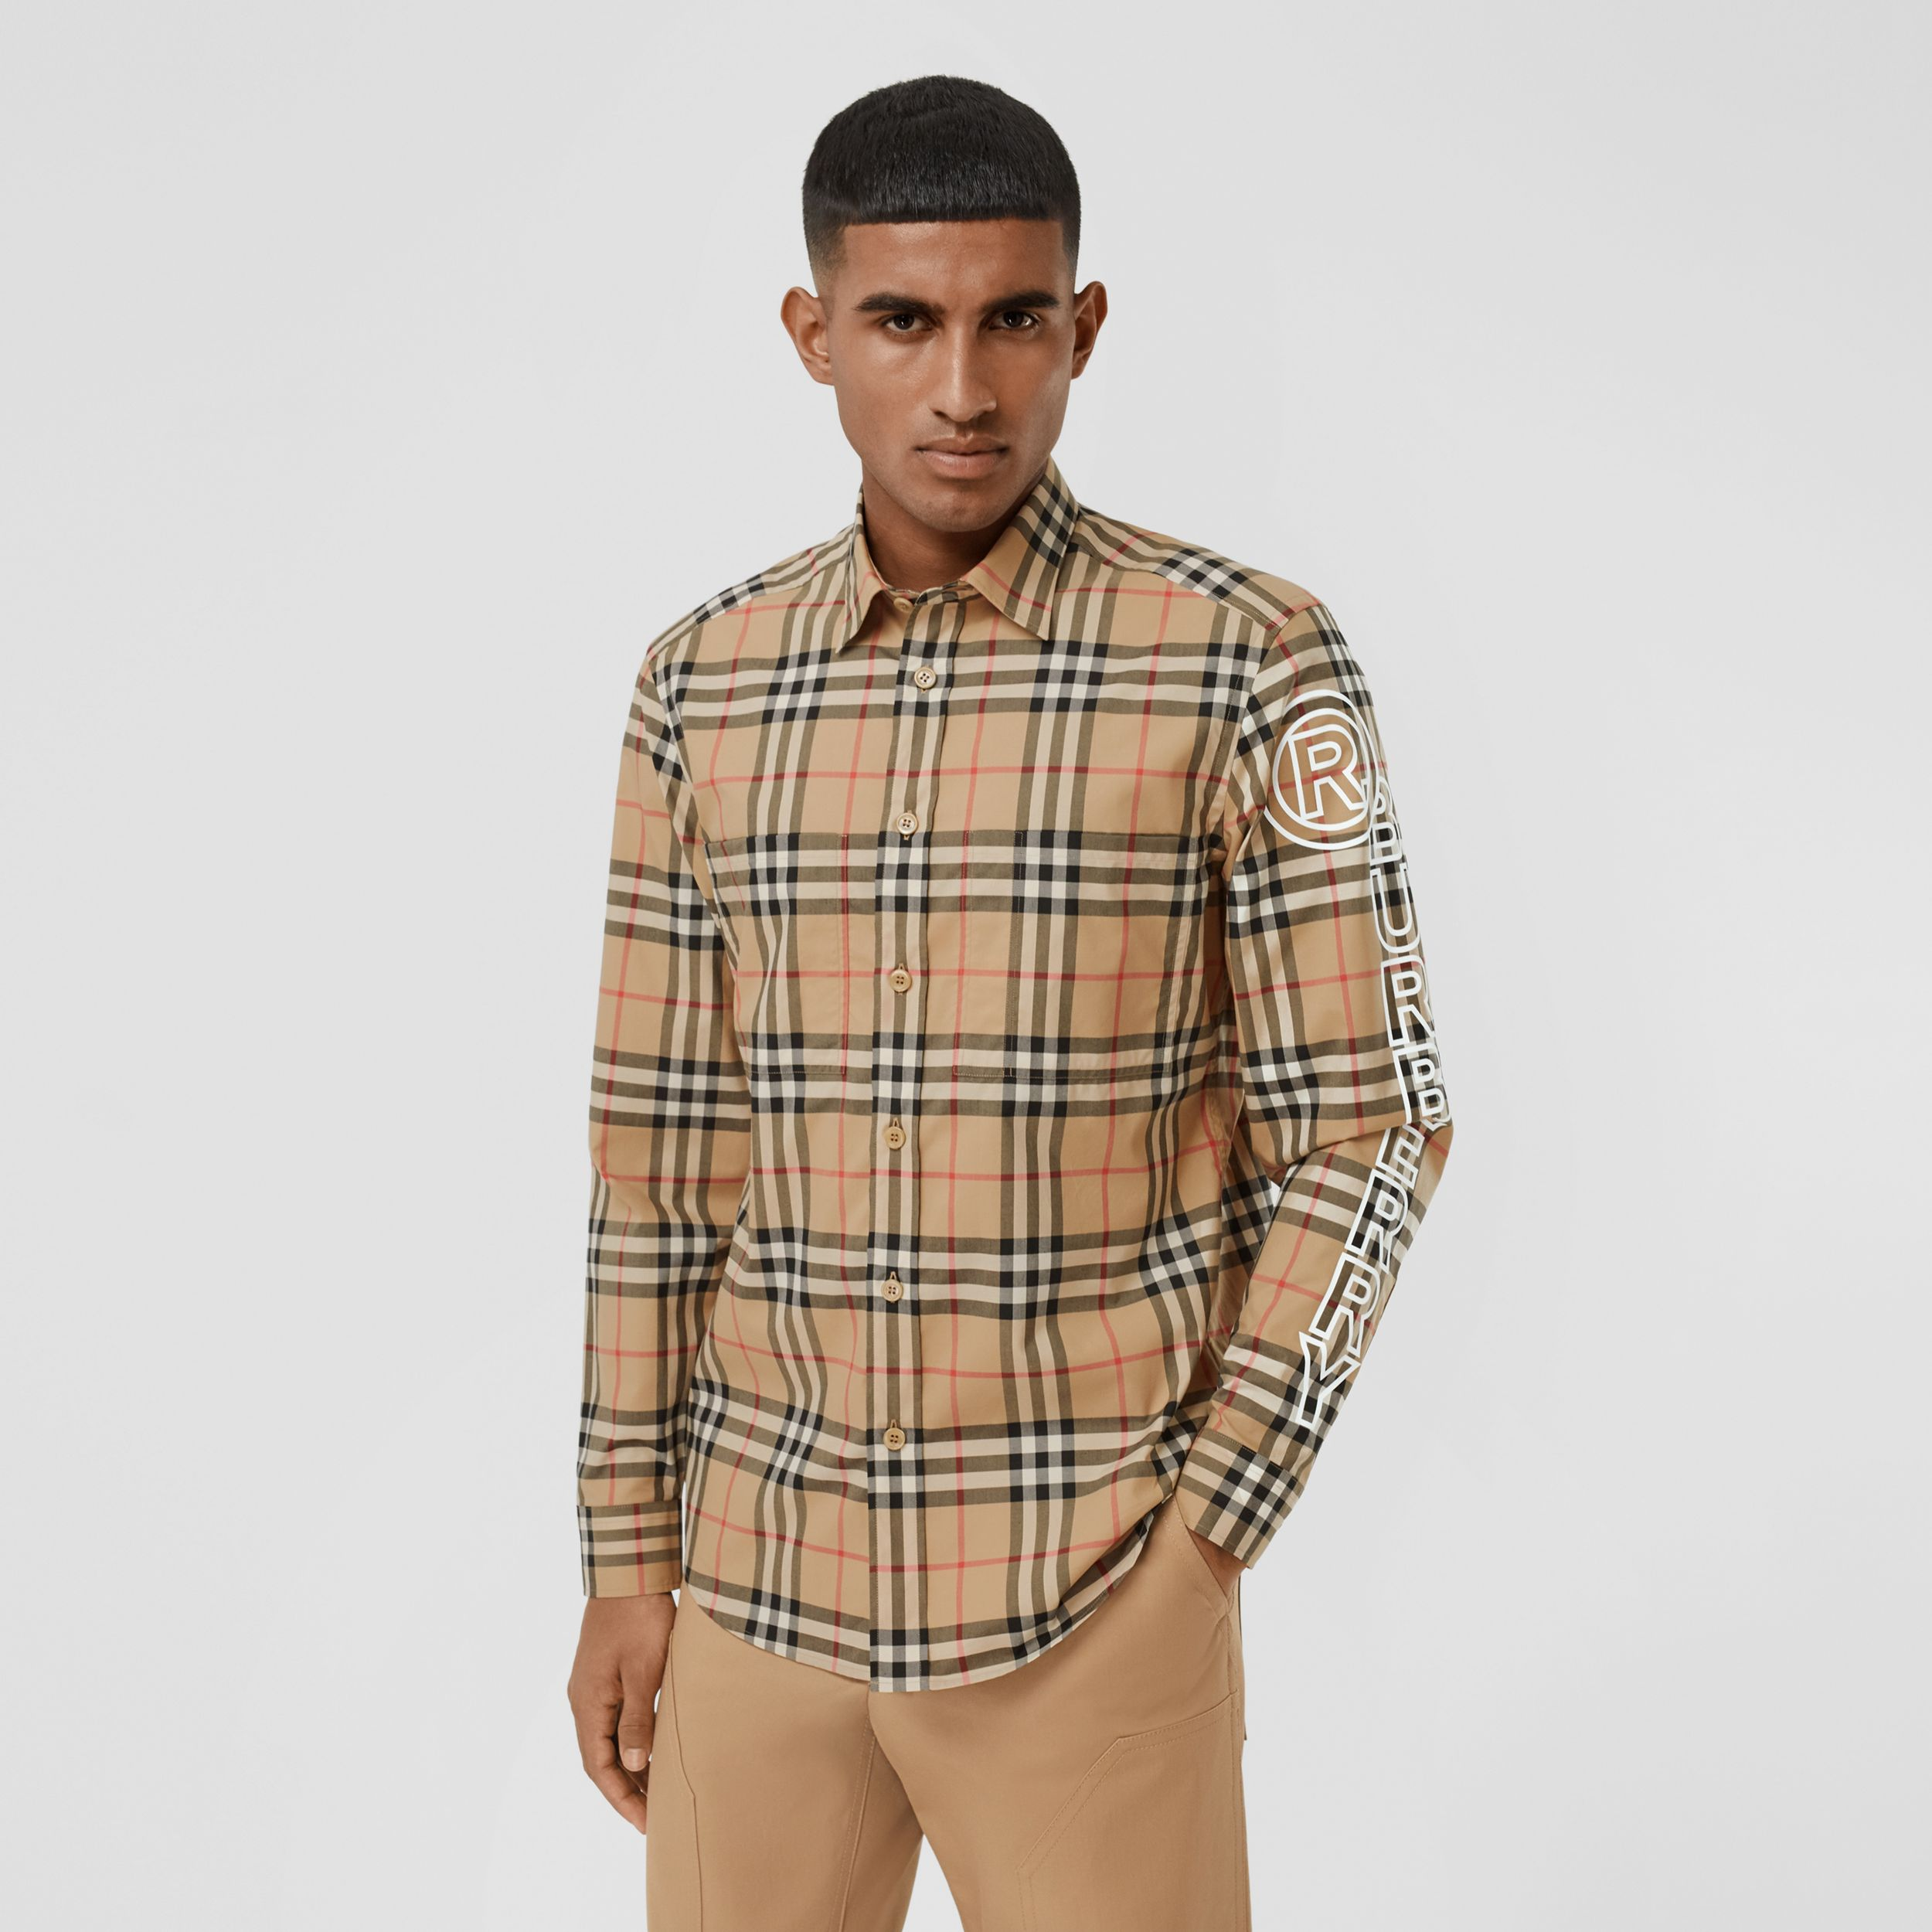 Logo Print Vintage Check Cotton Poplin Shirt in Archive Beige - Men | Burberry Australia - 1